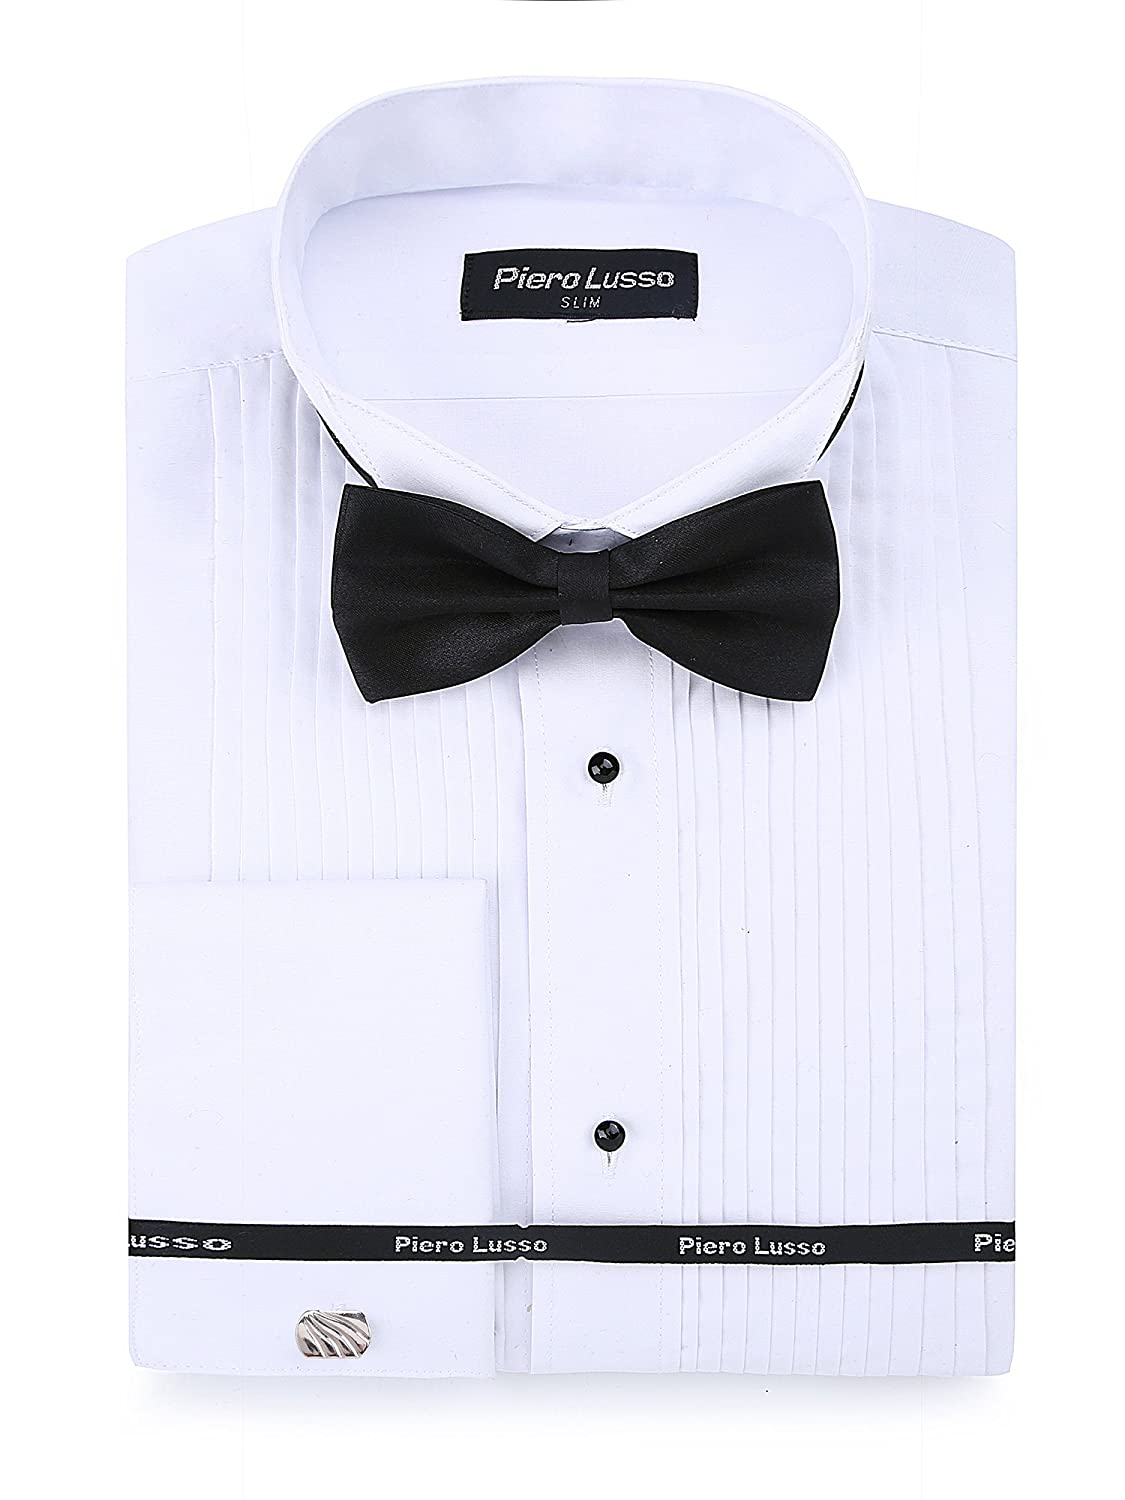 Piero Lusso Men's Wingtip Collar Tuxedo Dress Shirt with French Cuffs and Bow Tie